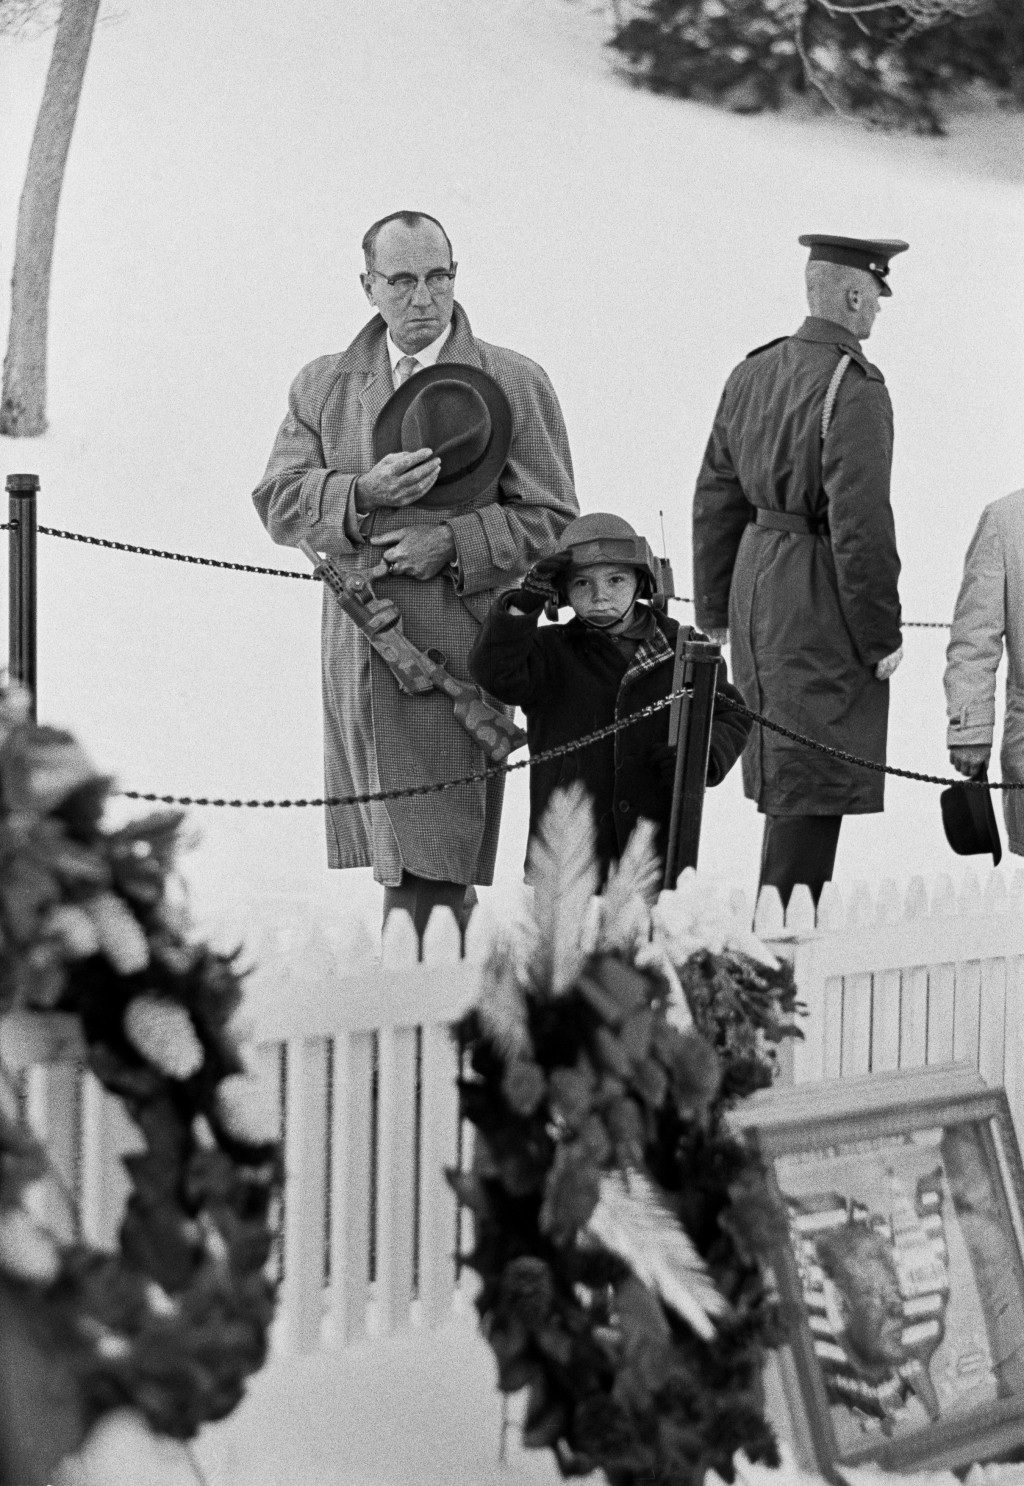 USA. Washington, D.C. 1963. A father and boy with a toy helmet and gun give a salute at the grave of John F. Kennedy in Arlington cemetary.